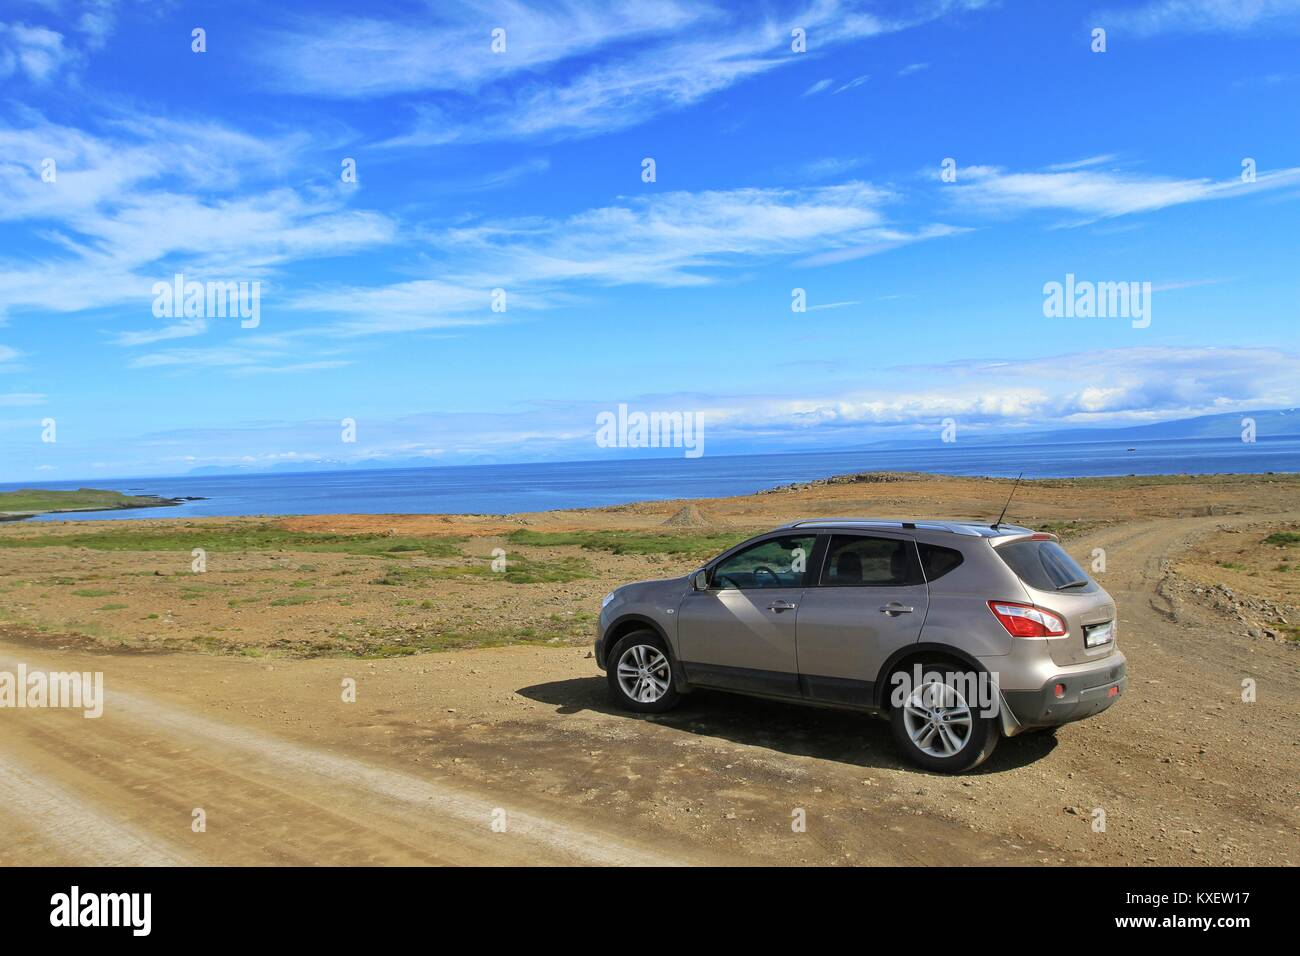 Parked car in Iceland on a Dirt Raod Ocan in Background - Stock Image